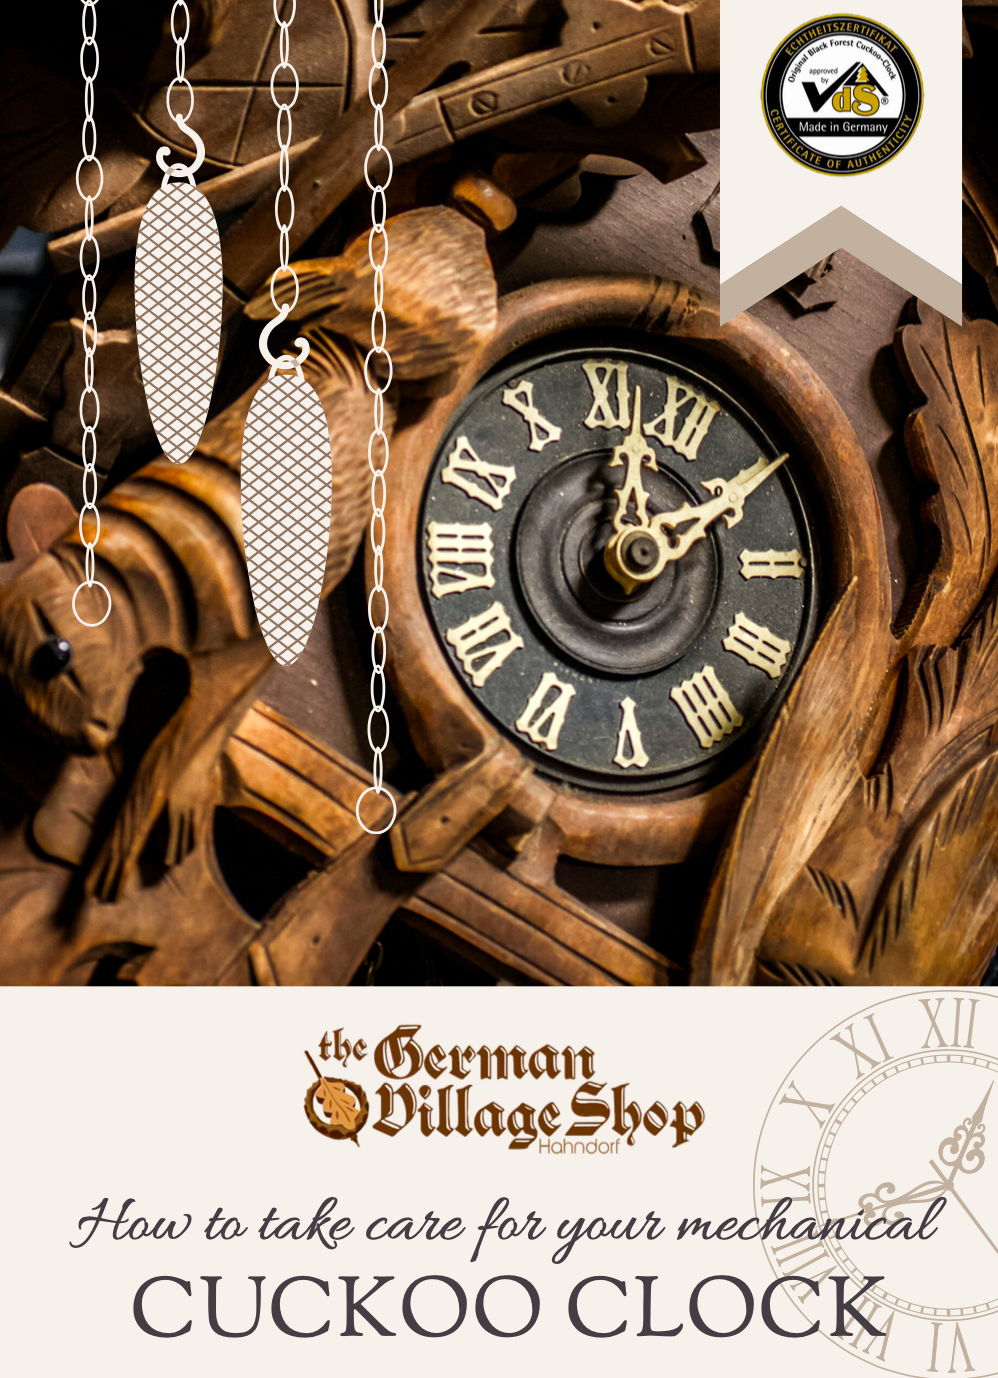 Mechanical cuckoo clock care PDF from The German Village Shop